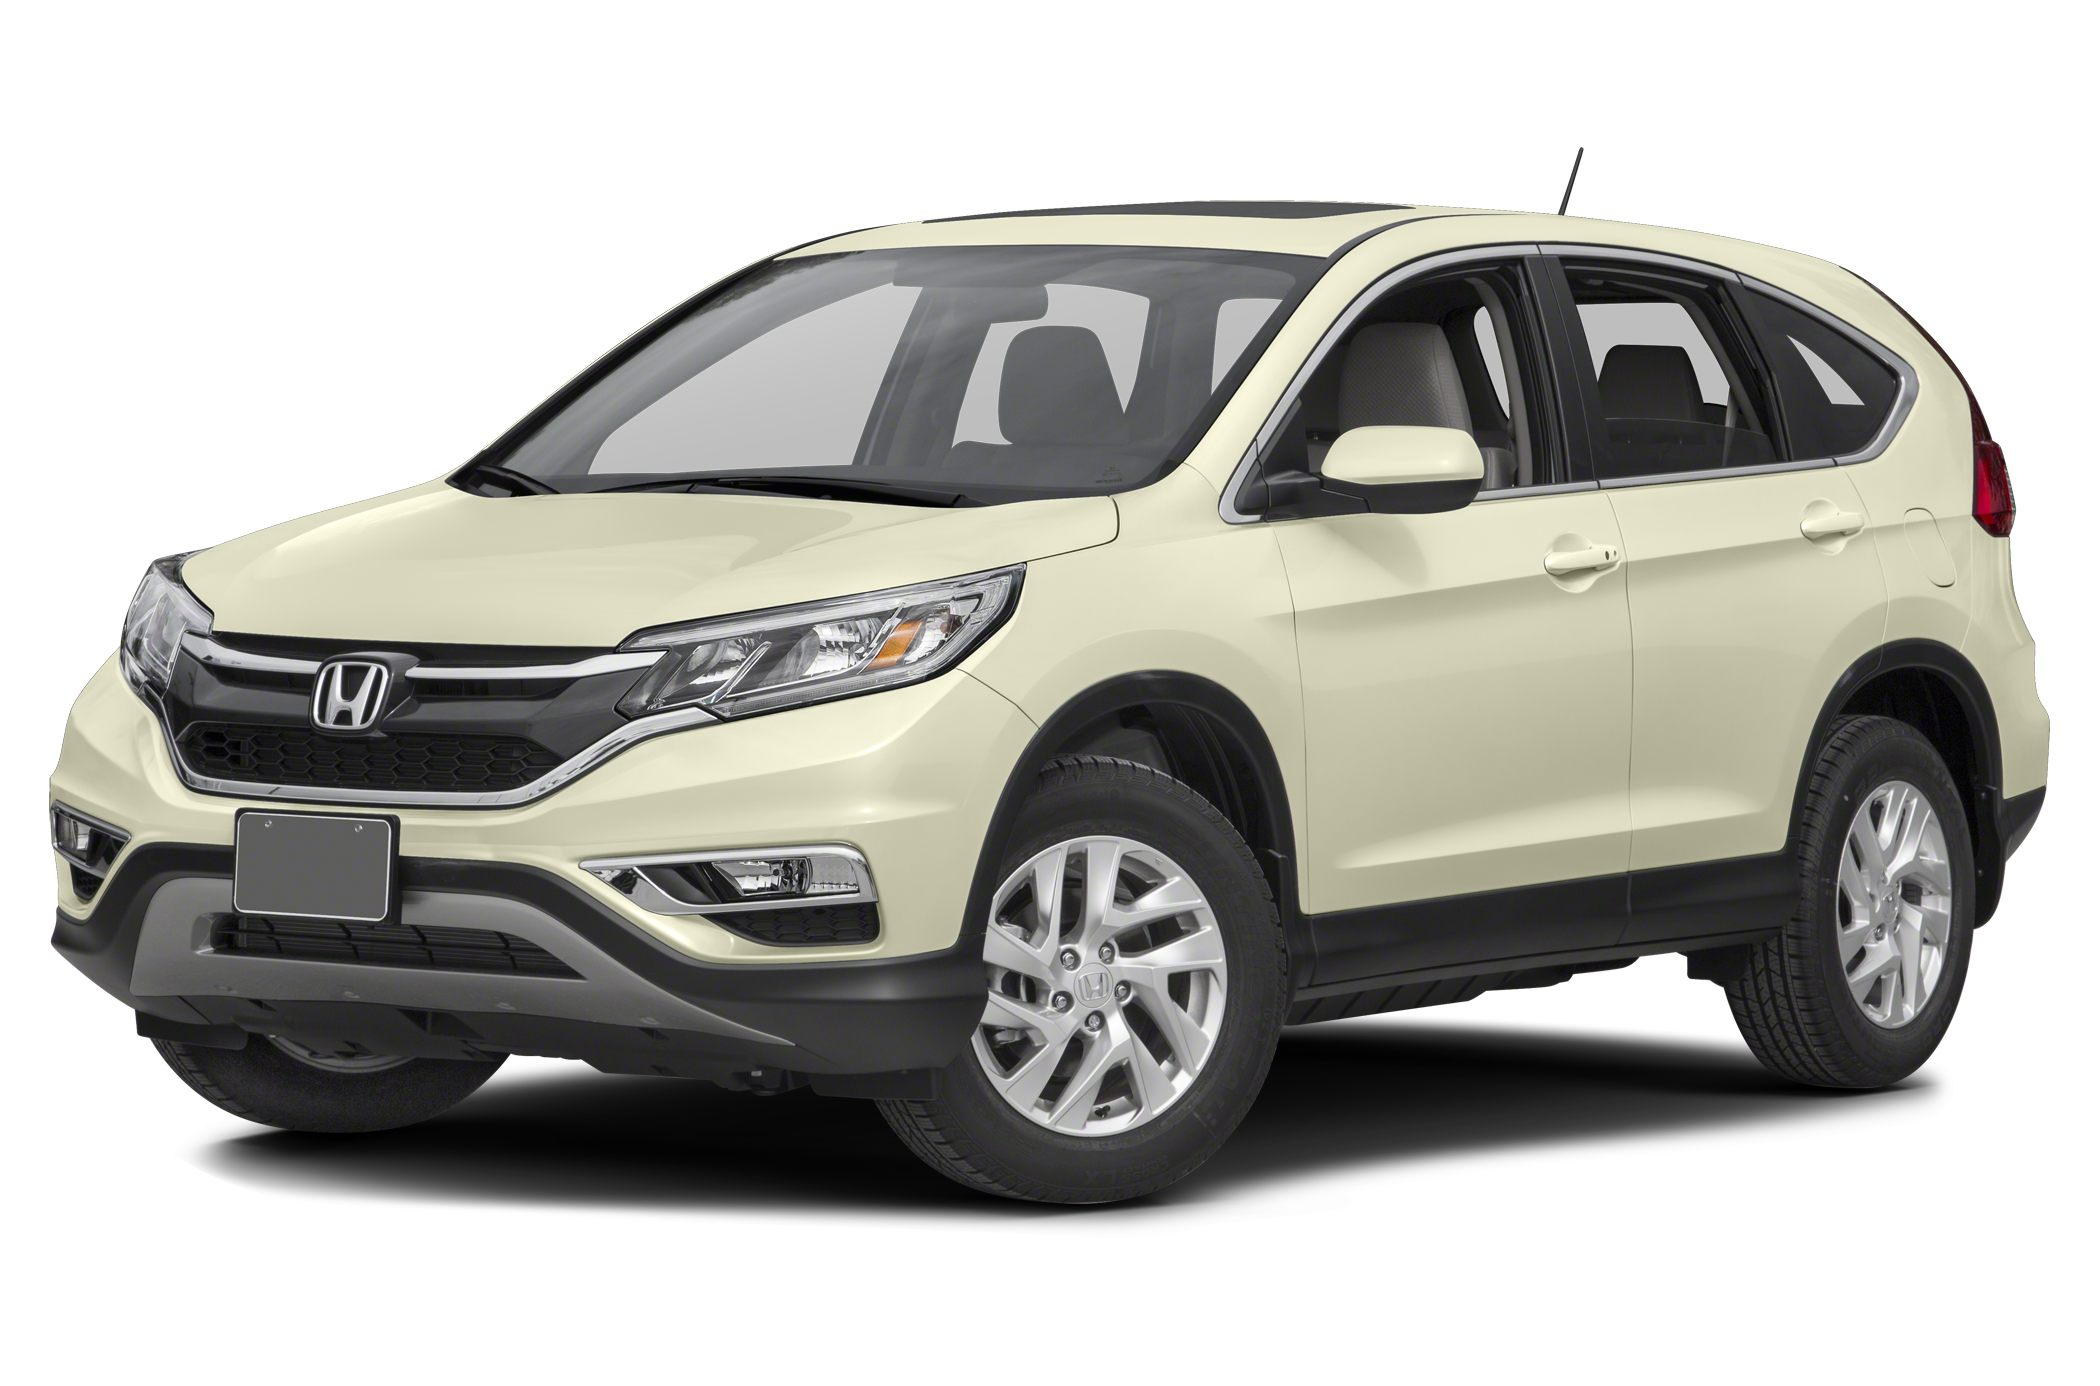 2016 Honda CR-V EX Its time for Classic of Texoma Nice SUV This attractive 2016 Honda CR-V is t